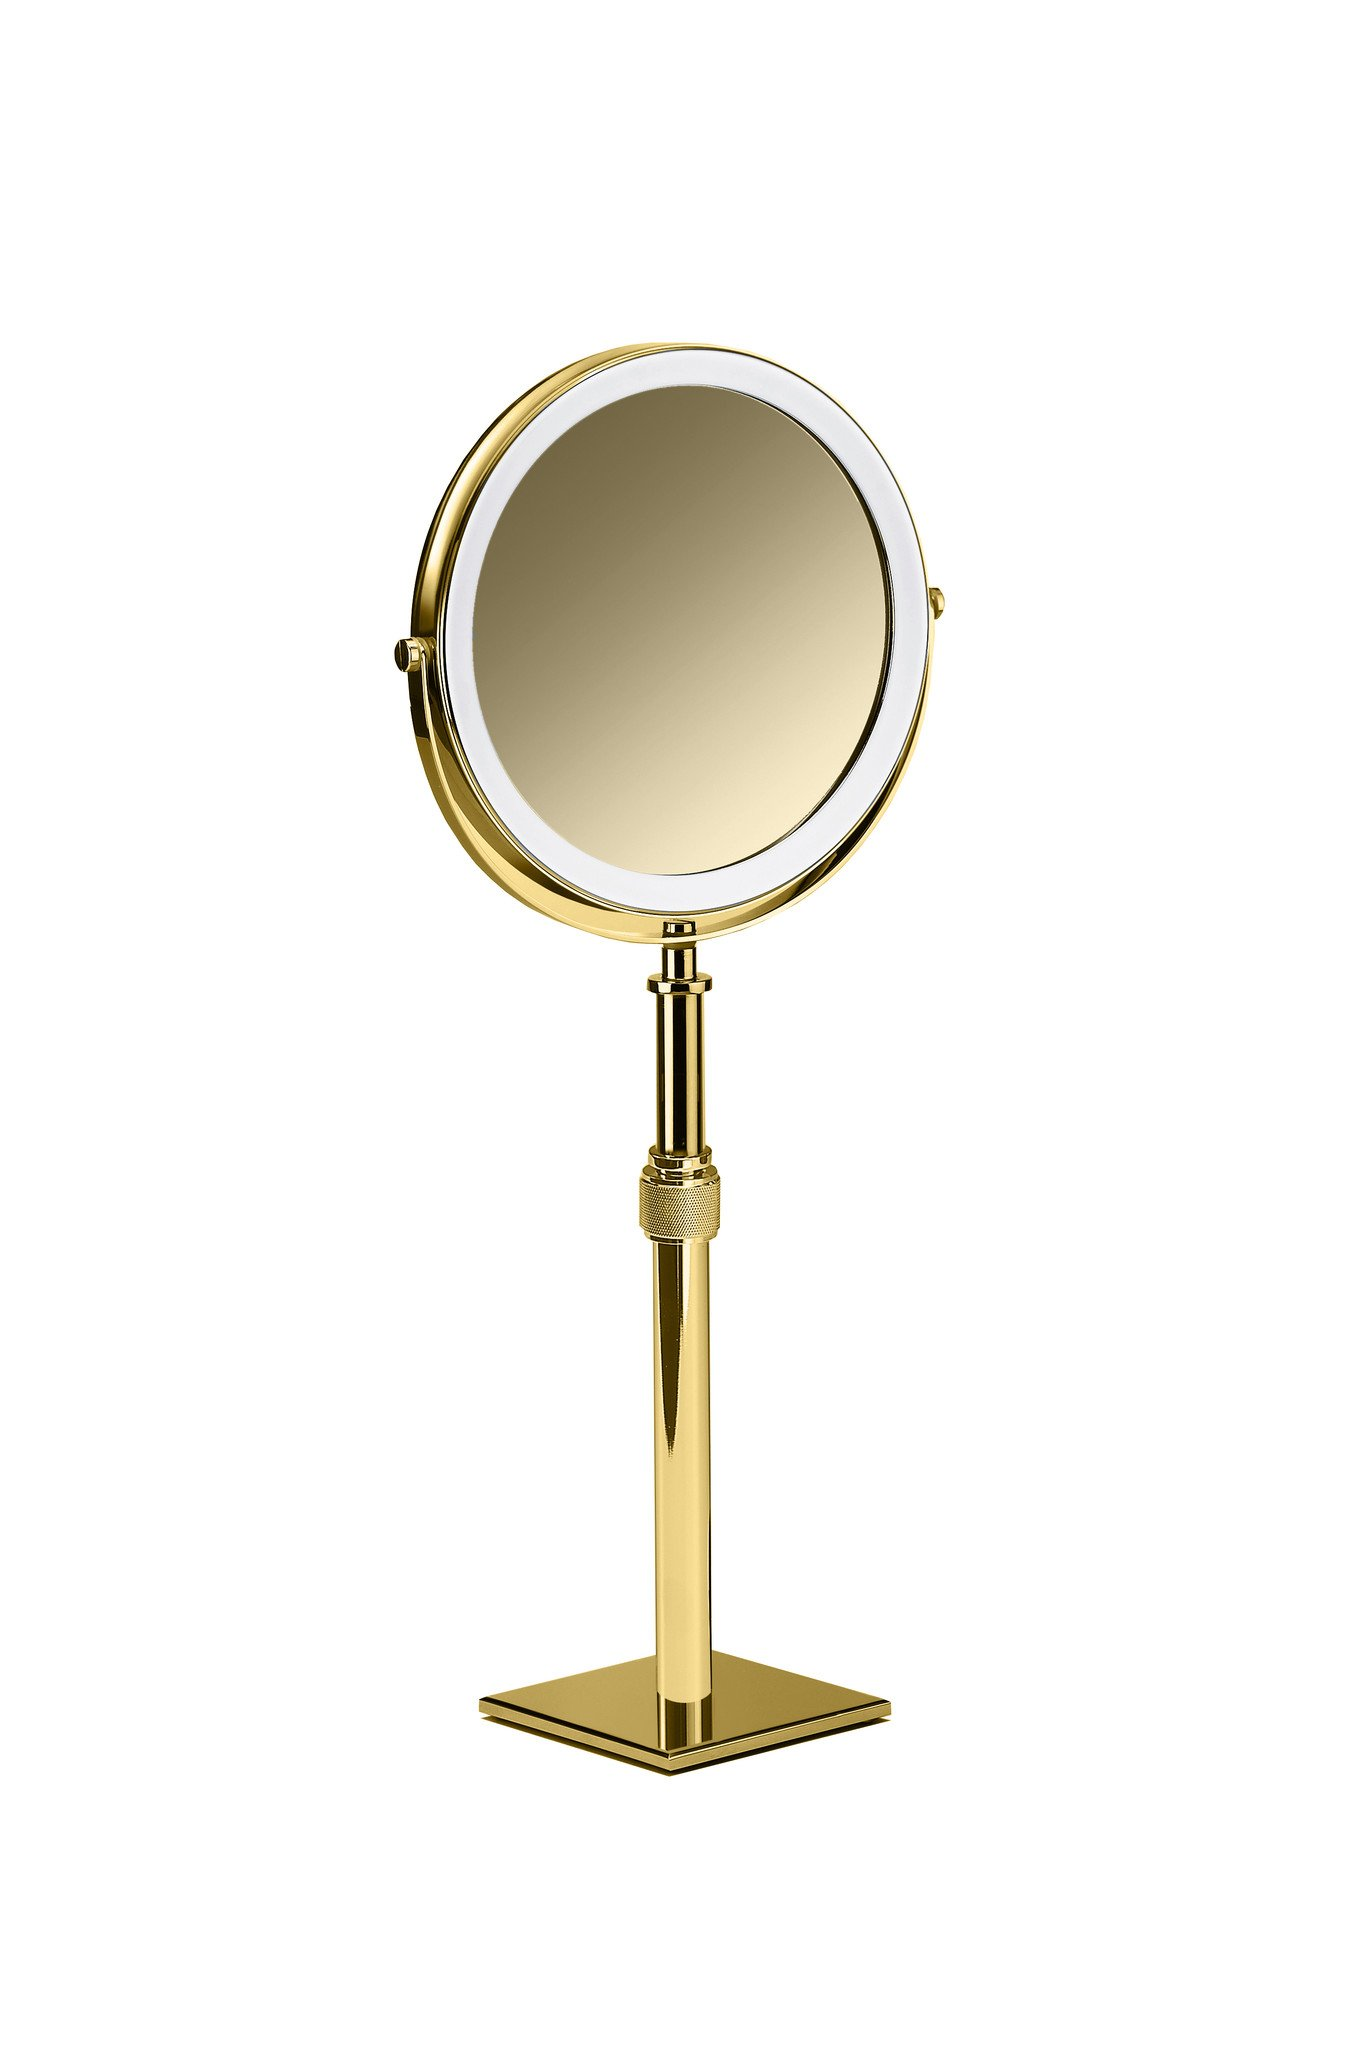 DWBA Table Height Adjustable Cosmetic Makeup 5x Magnifying Mirror (Polished Gold)